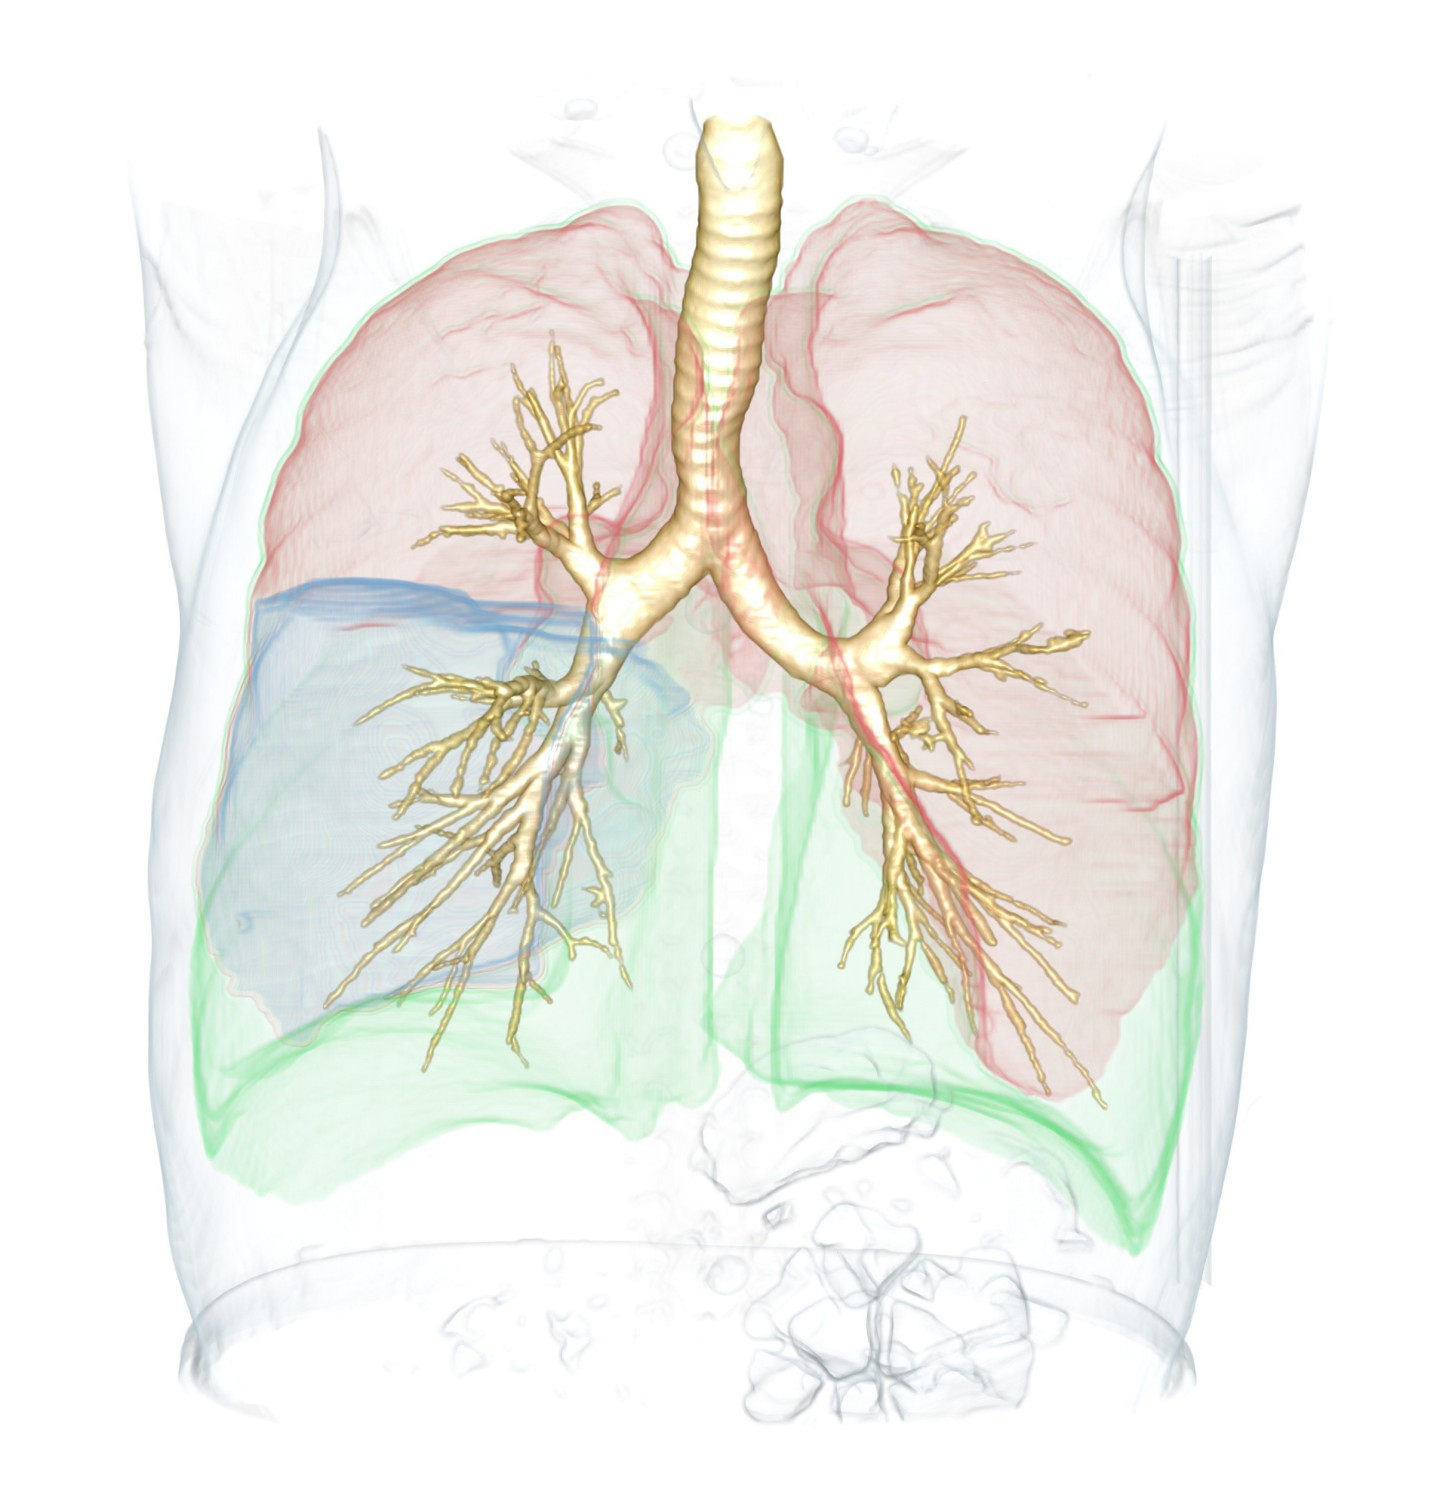 3D volume rendering of the segmented lungs, lobes, and airways.